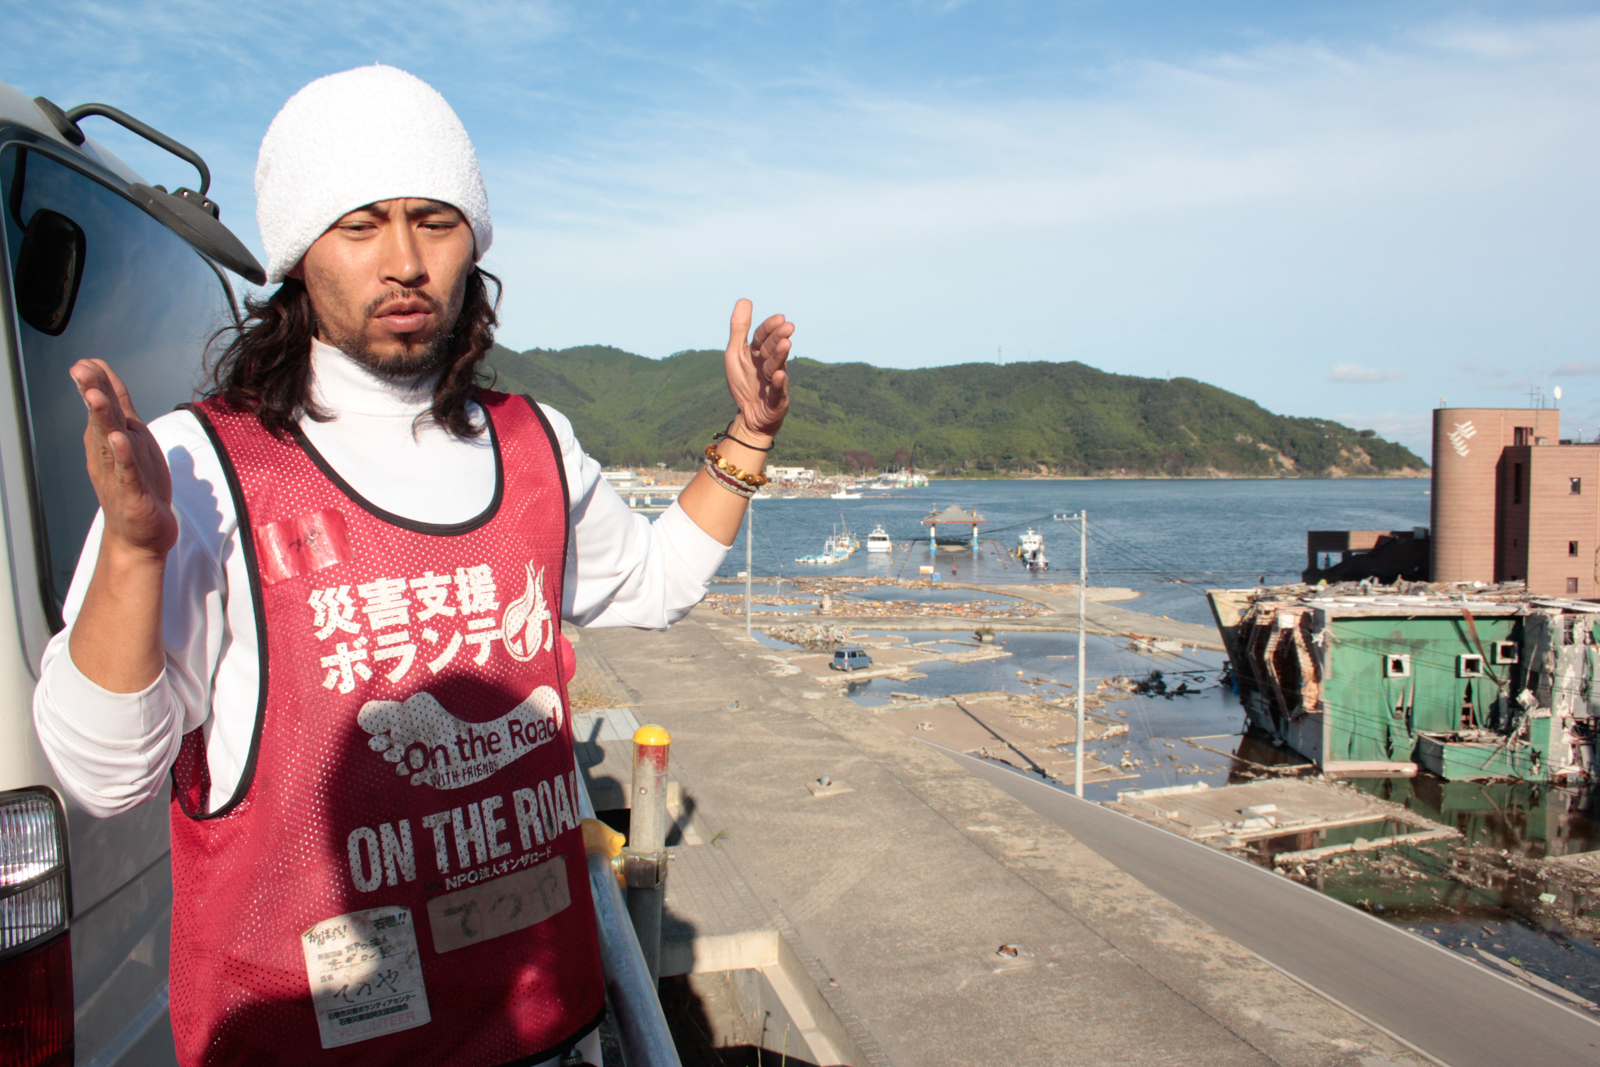 Volunteer prepares to help with the cleanup after the tsunami in Tohoku